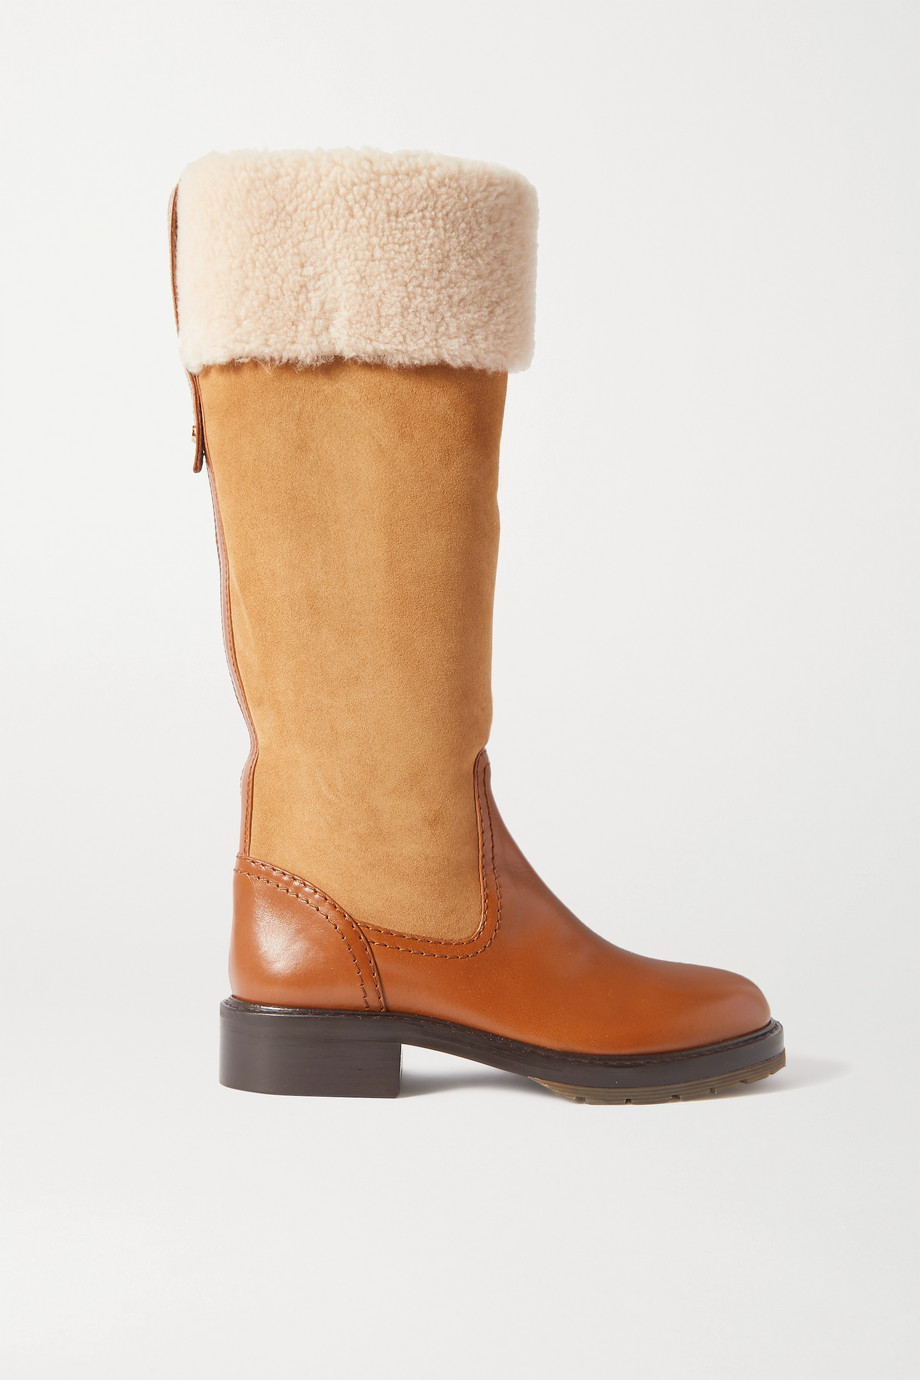 Chloé Shearling-trimmed suede and leather knee boots